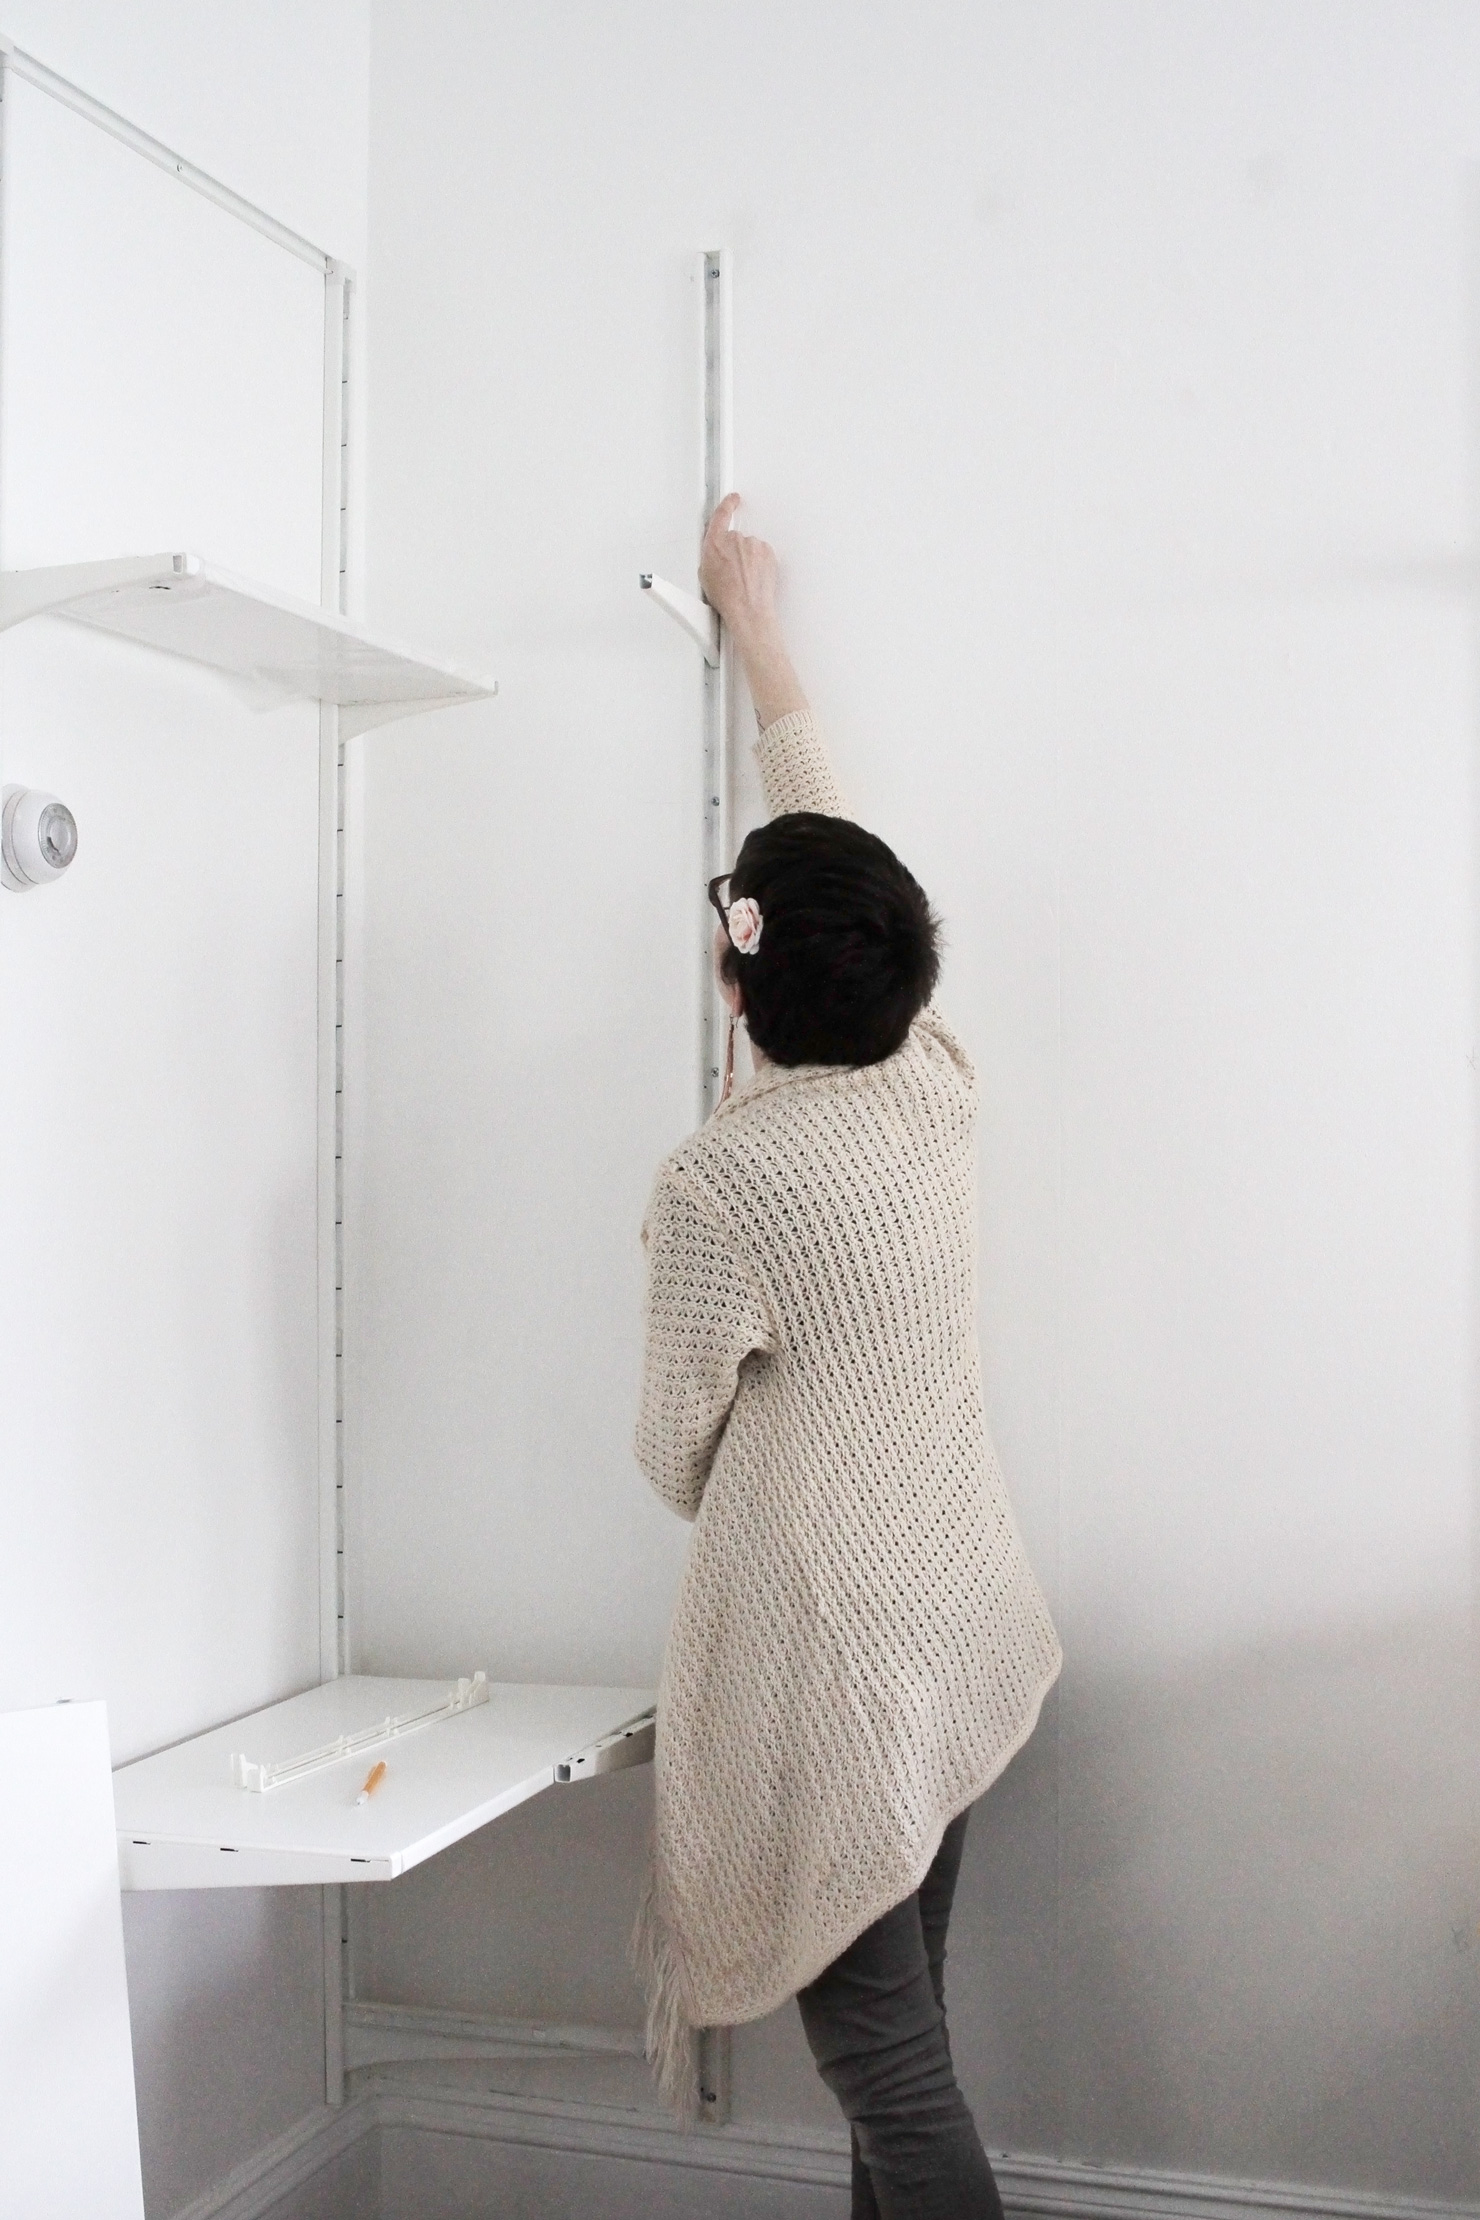 How to Hang Heavy Shelves on Horsehair Plaster Walls - Idle Hands Awake